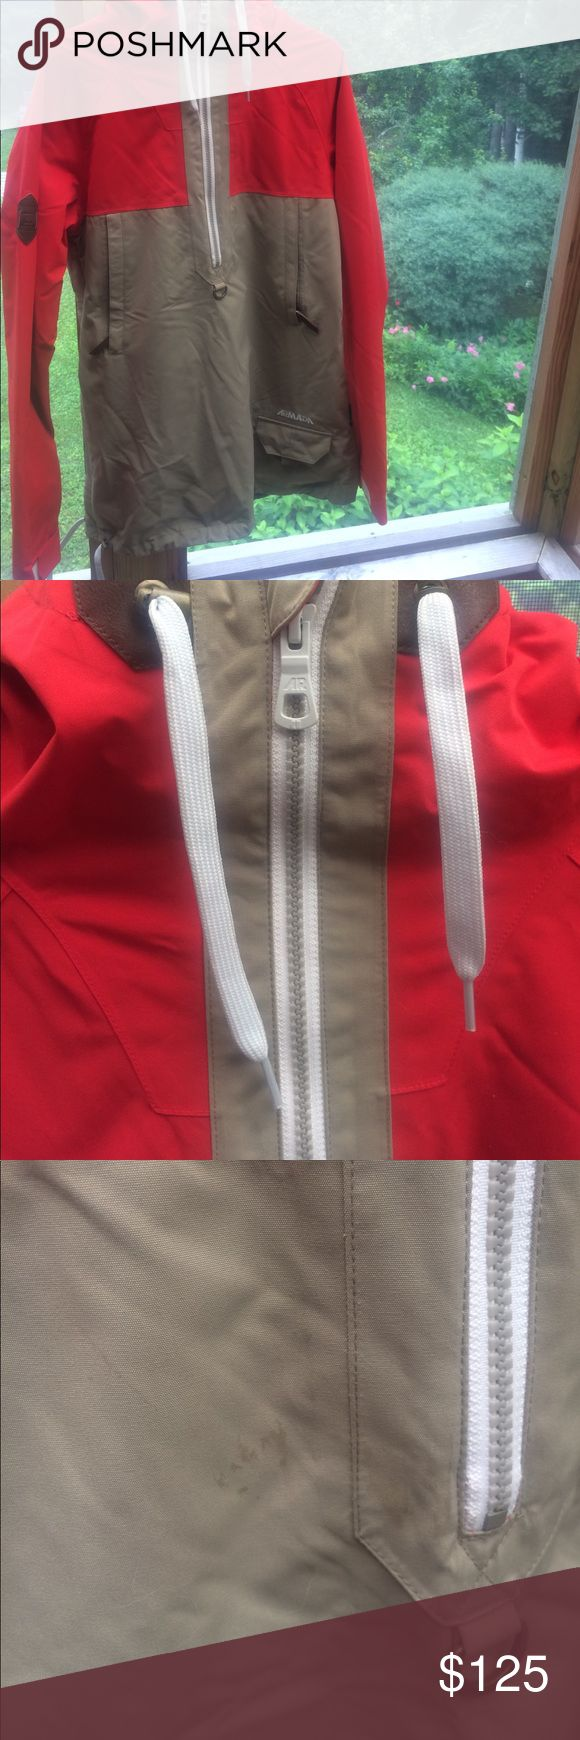 Armada ski/snowboard jacket Pullover jacket with light insulation and drawstring at hip. Very soft yet water resistant fabric. Worn maybe 3 times. Great jacket just never fit. Has underarm zip vents. Small mark near zip but will probably wash out, shown in pic. Armada Jackets & Coats